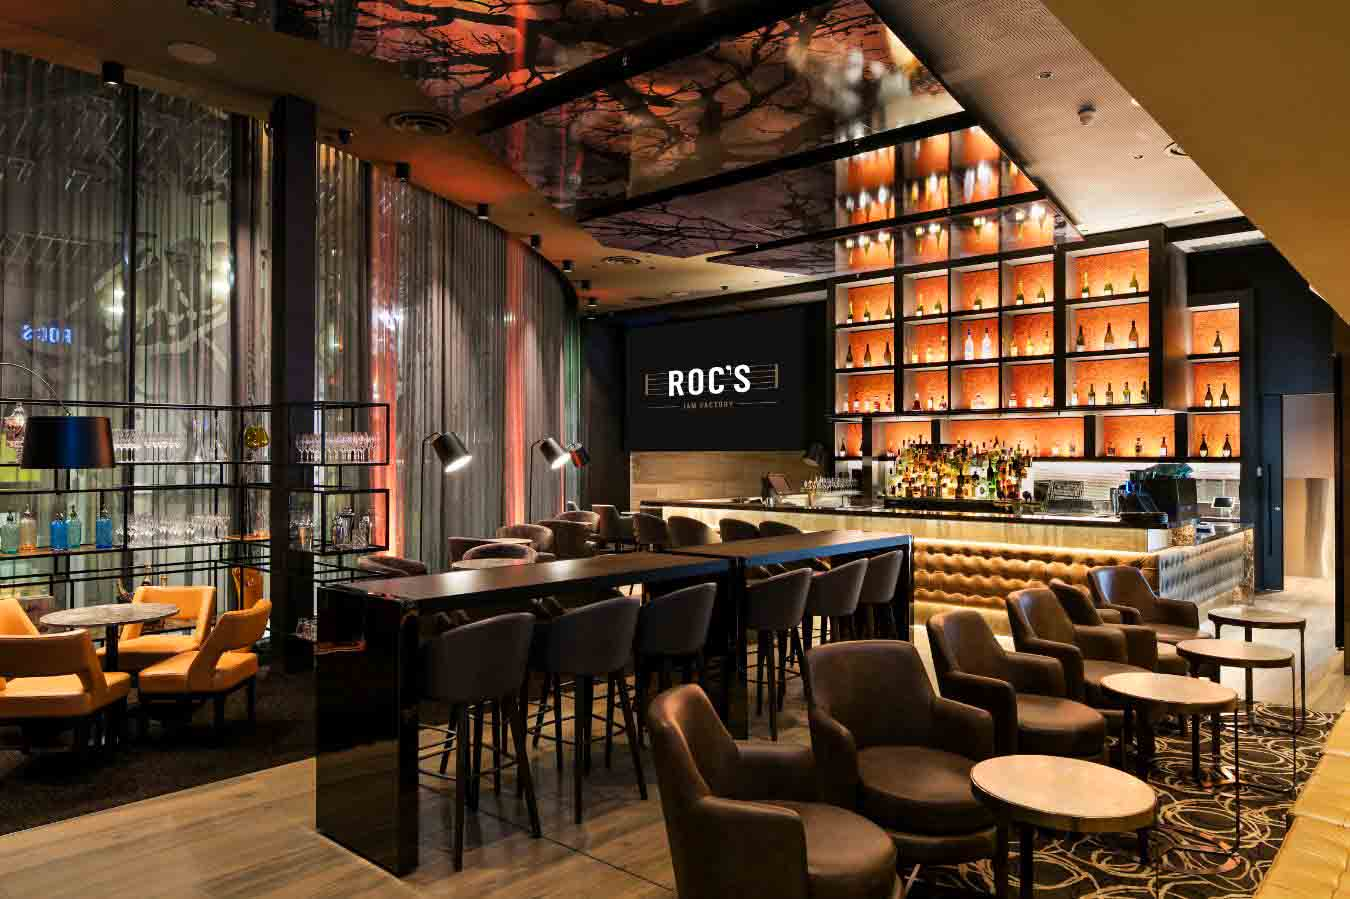 Roc's Jam Factory – Top Cocktail Bars